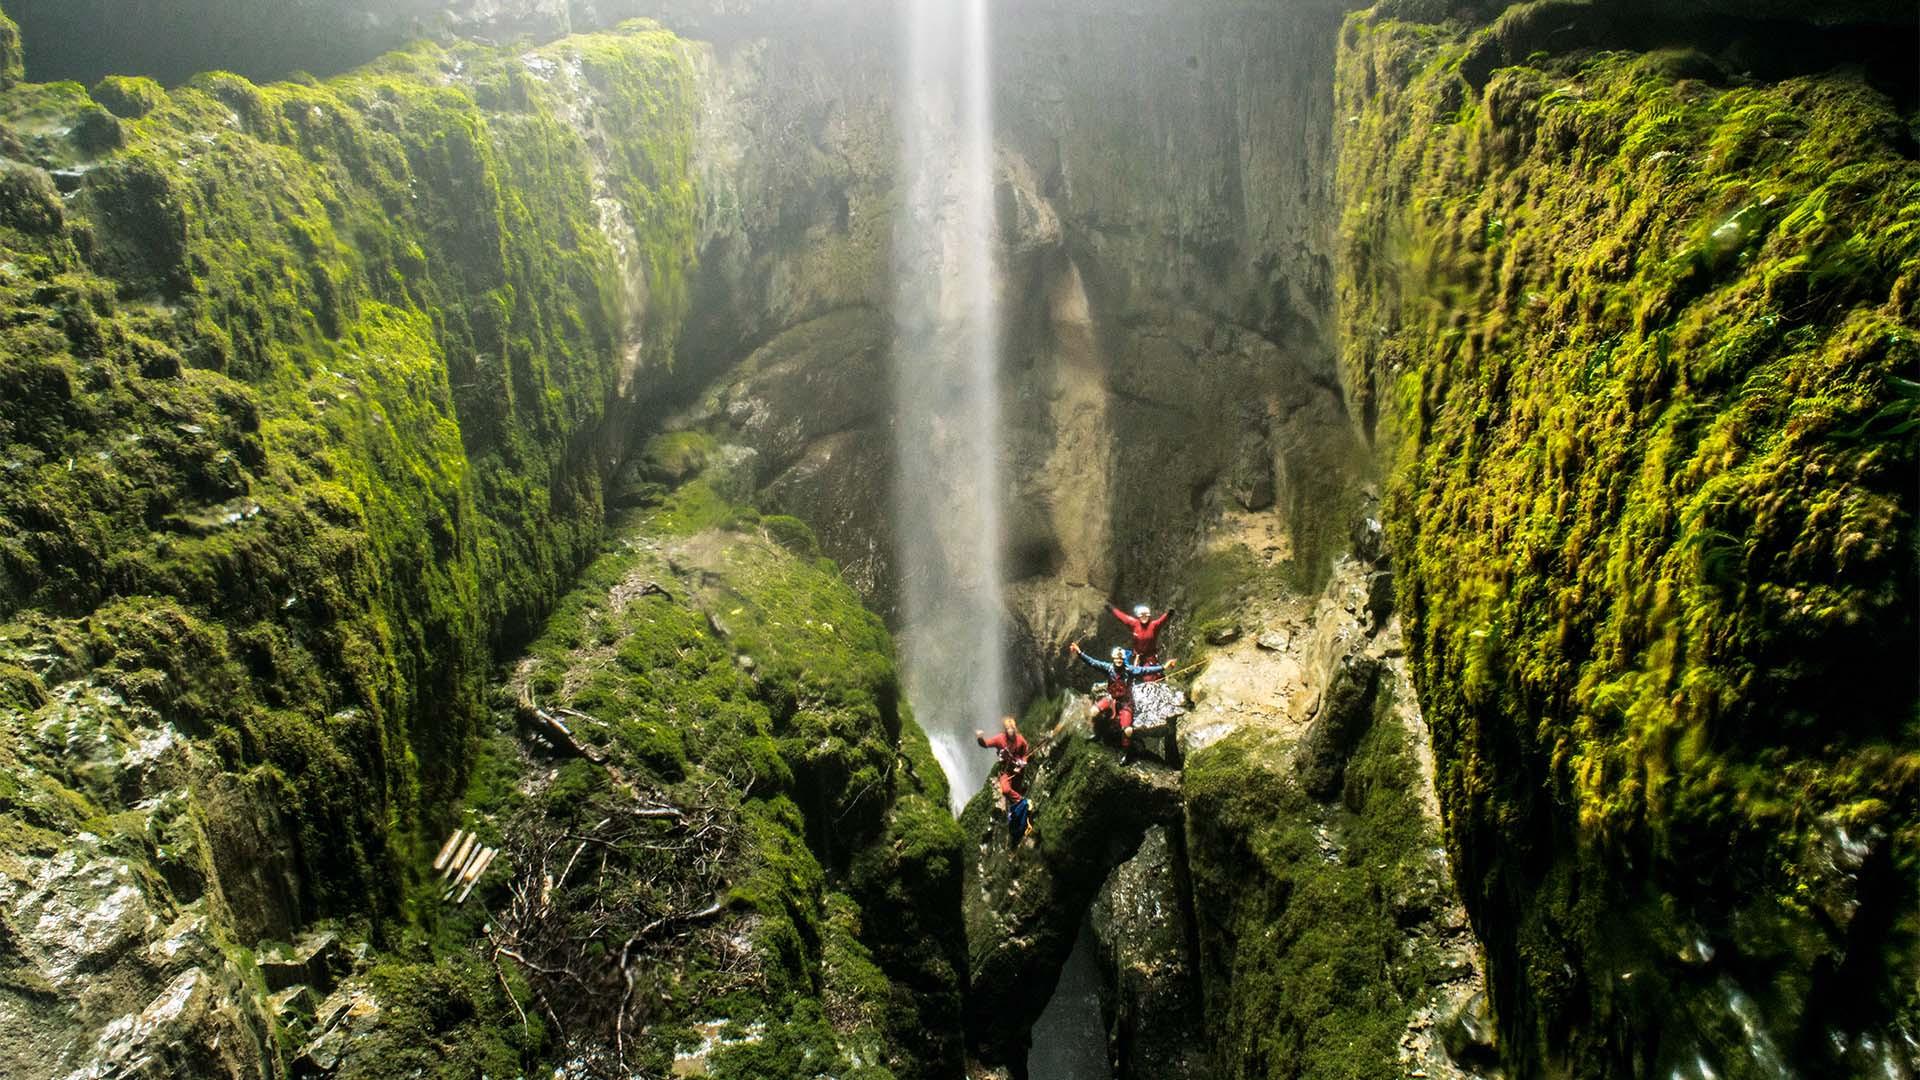 Caving in the Yorkshire Dales and Peak District